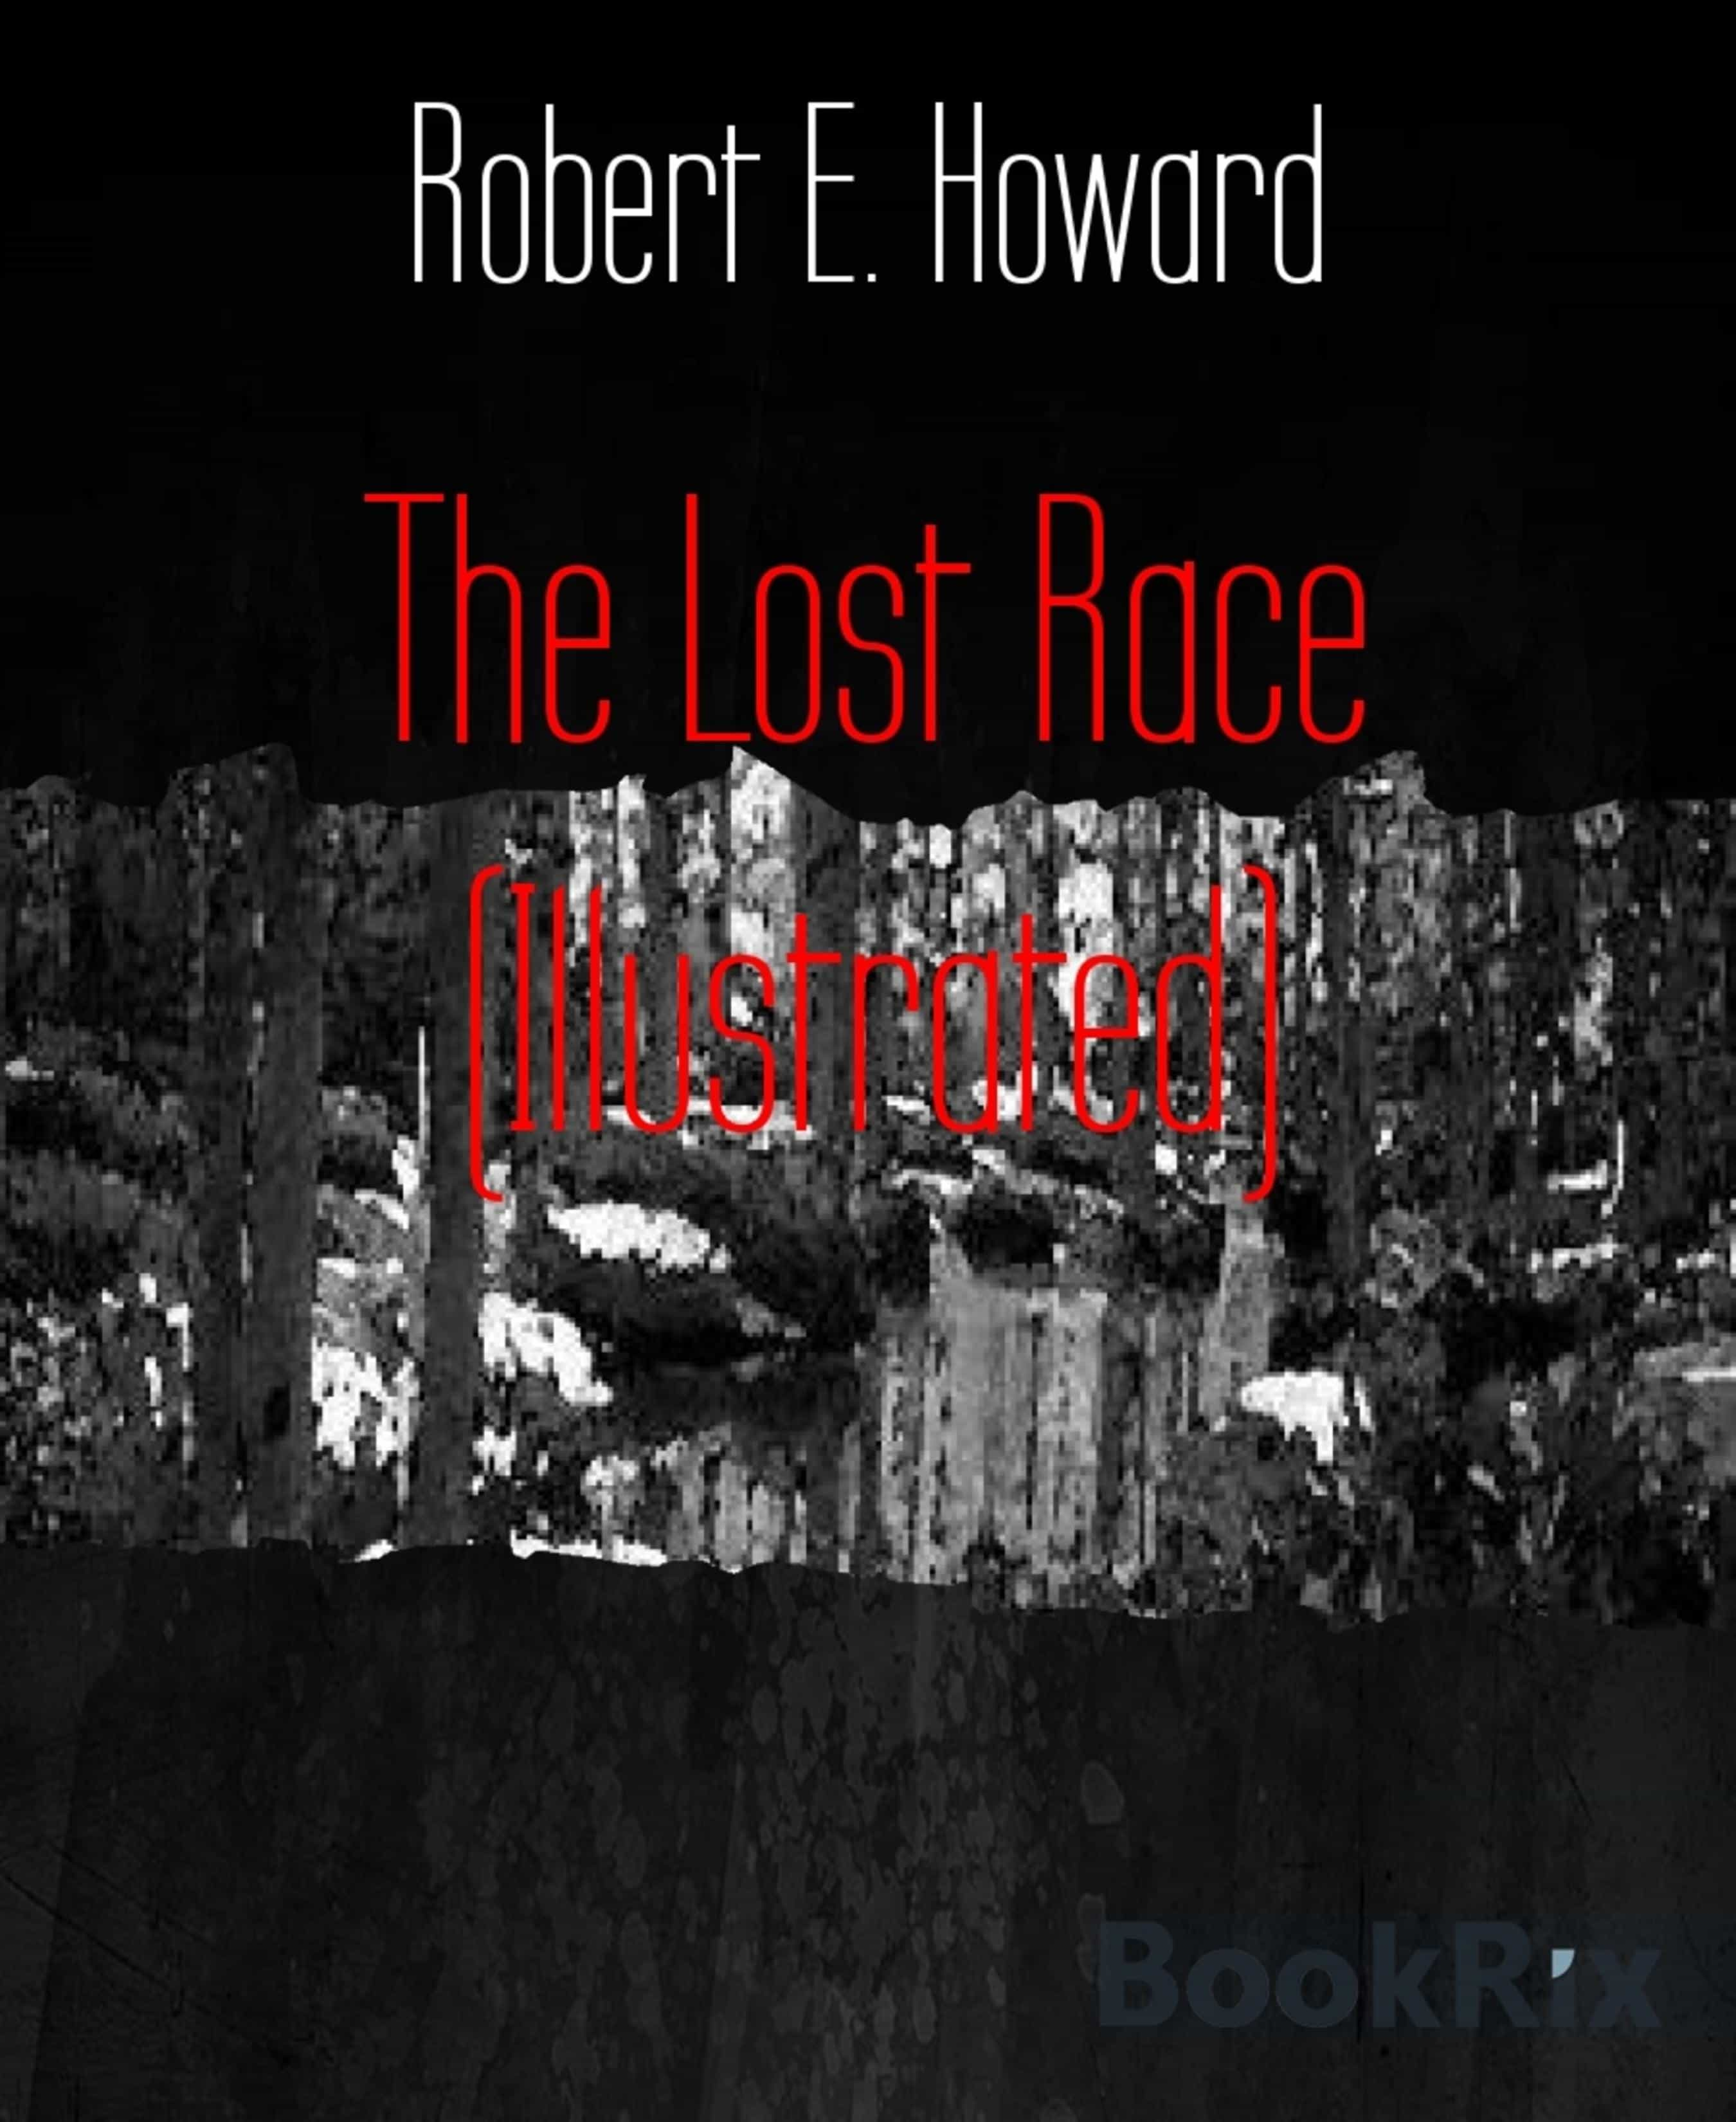 THE LOST RACE (ILLUSTRATED)